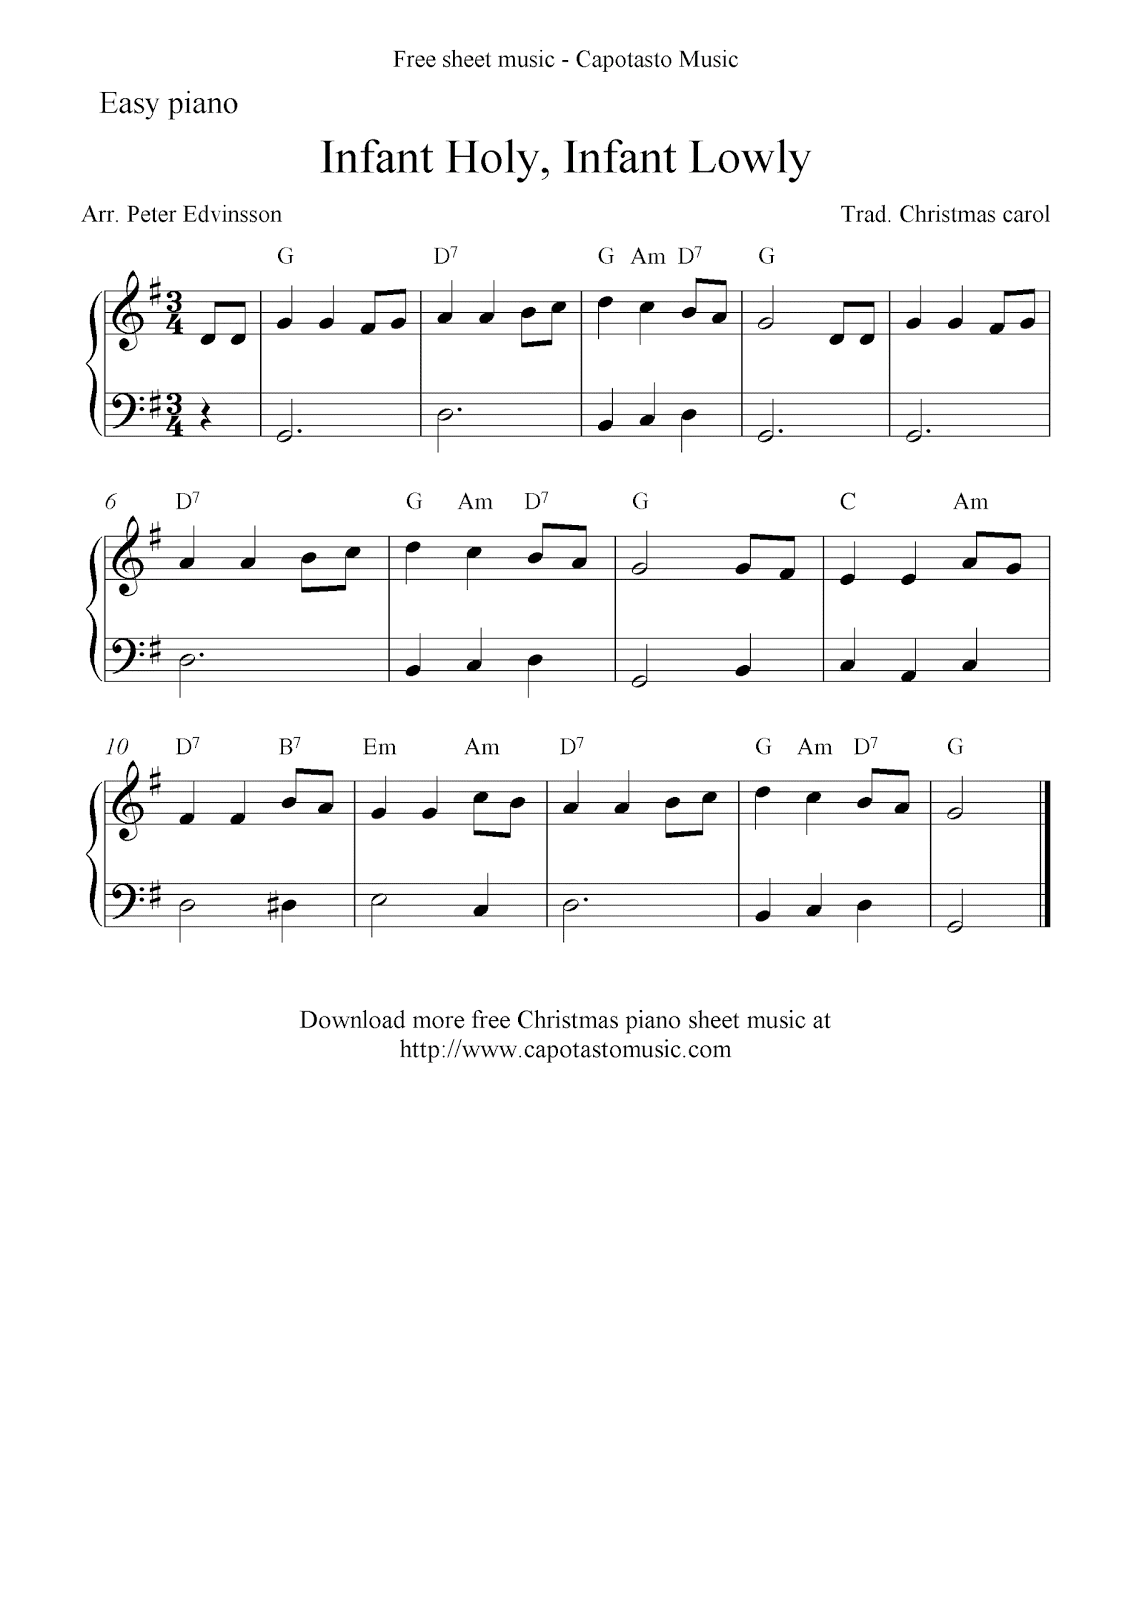 Free Christmas piano sheet music notes, Infant Holy, Infant Lowly